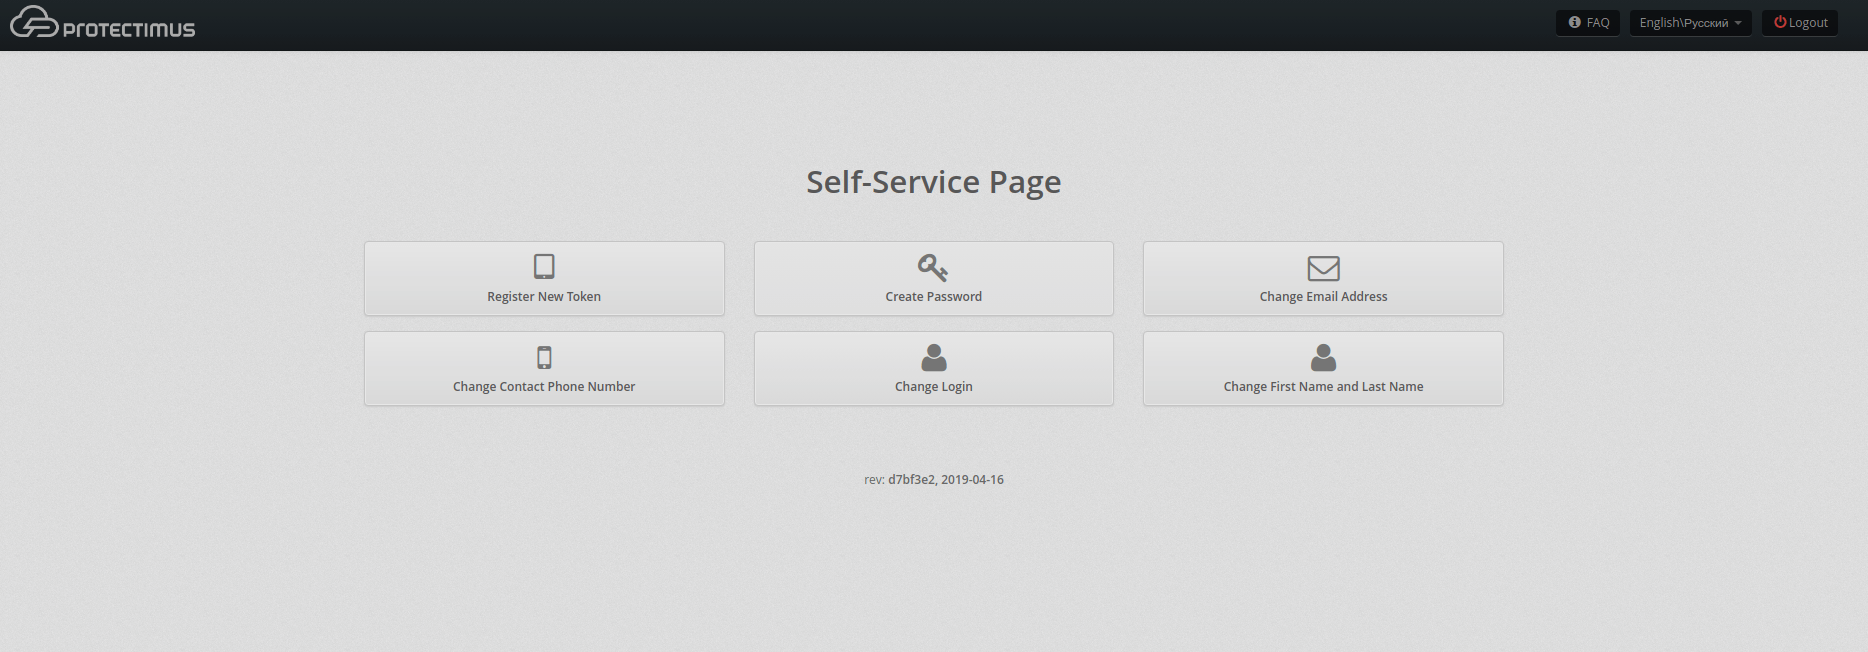 OWA two-factor authentication setup Protectimus DSPA - self-service page